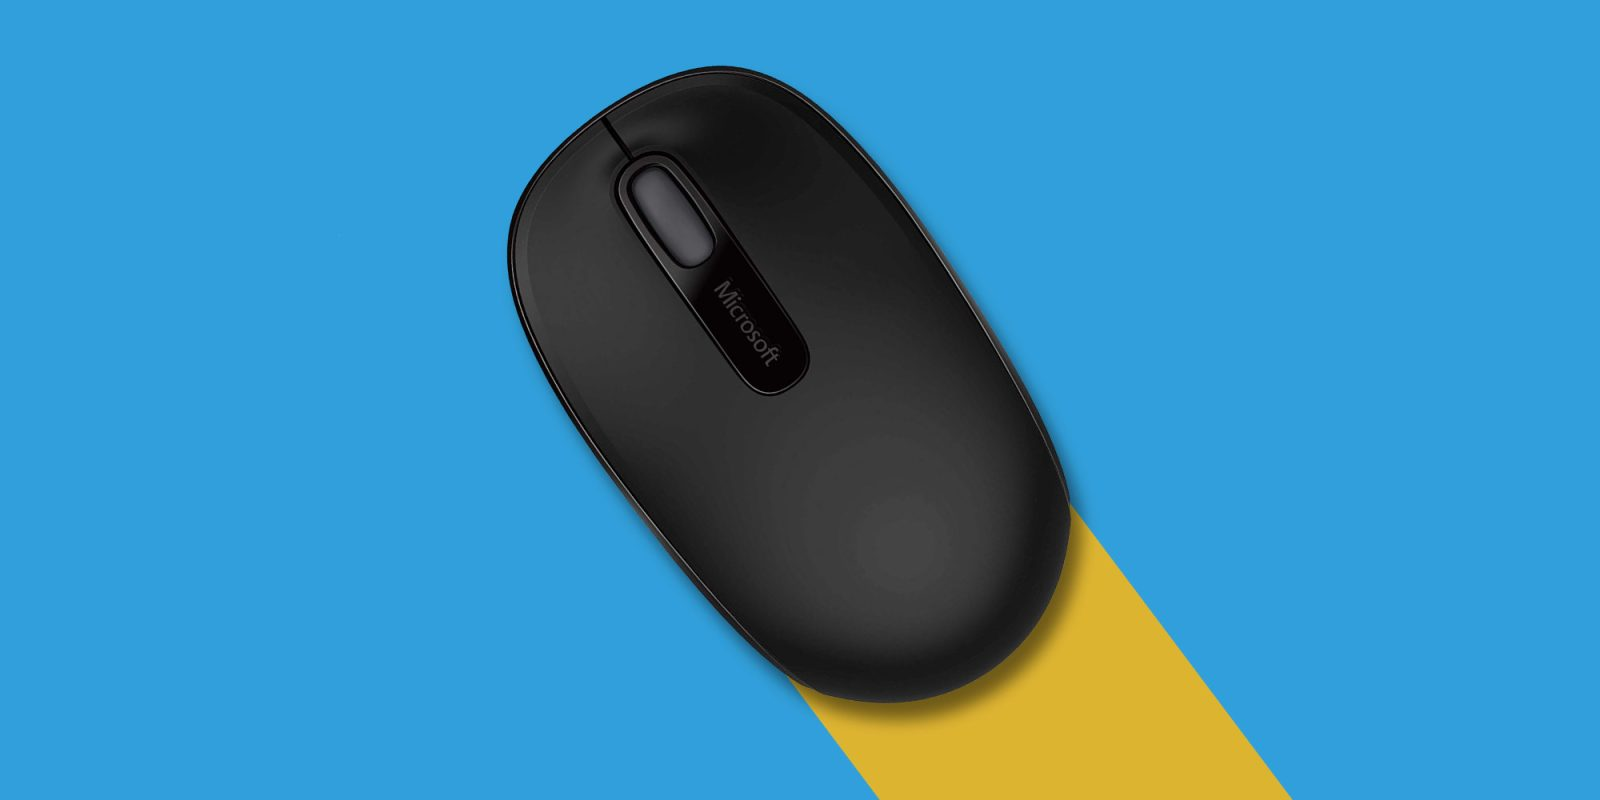 Microsoft Wireless Mobile Mouse 1850: the most affordable wireless mouse